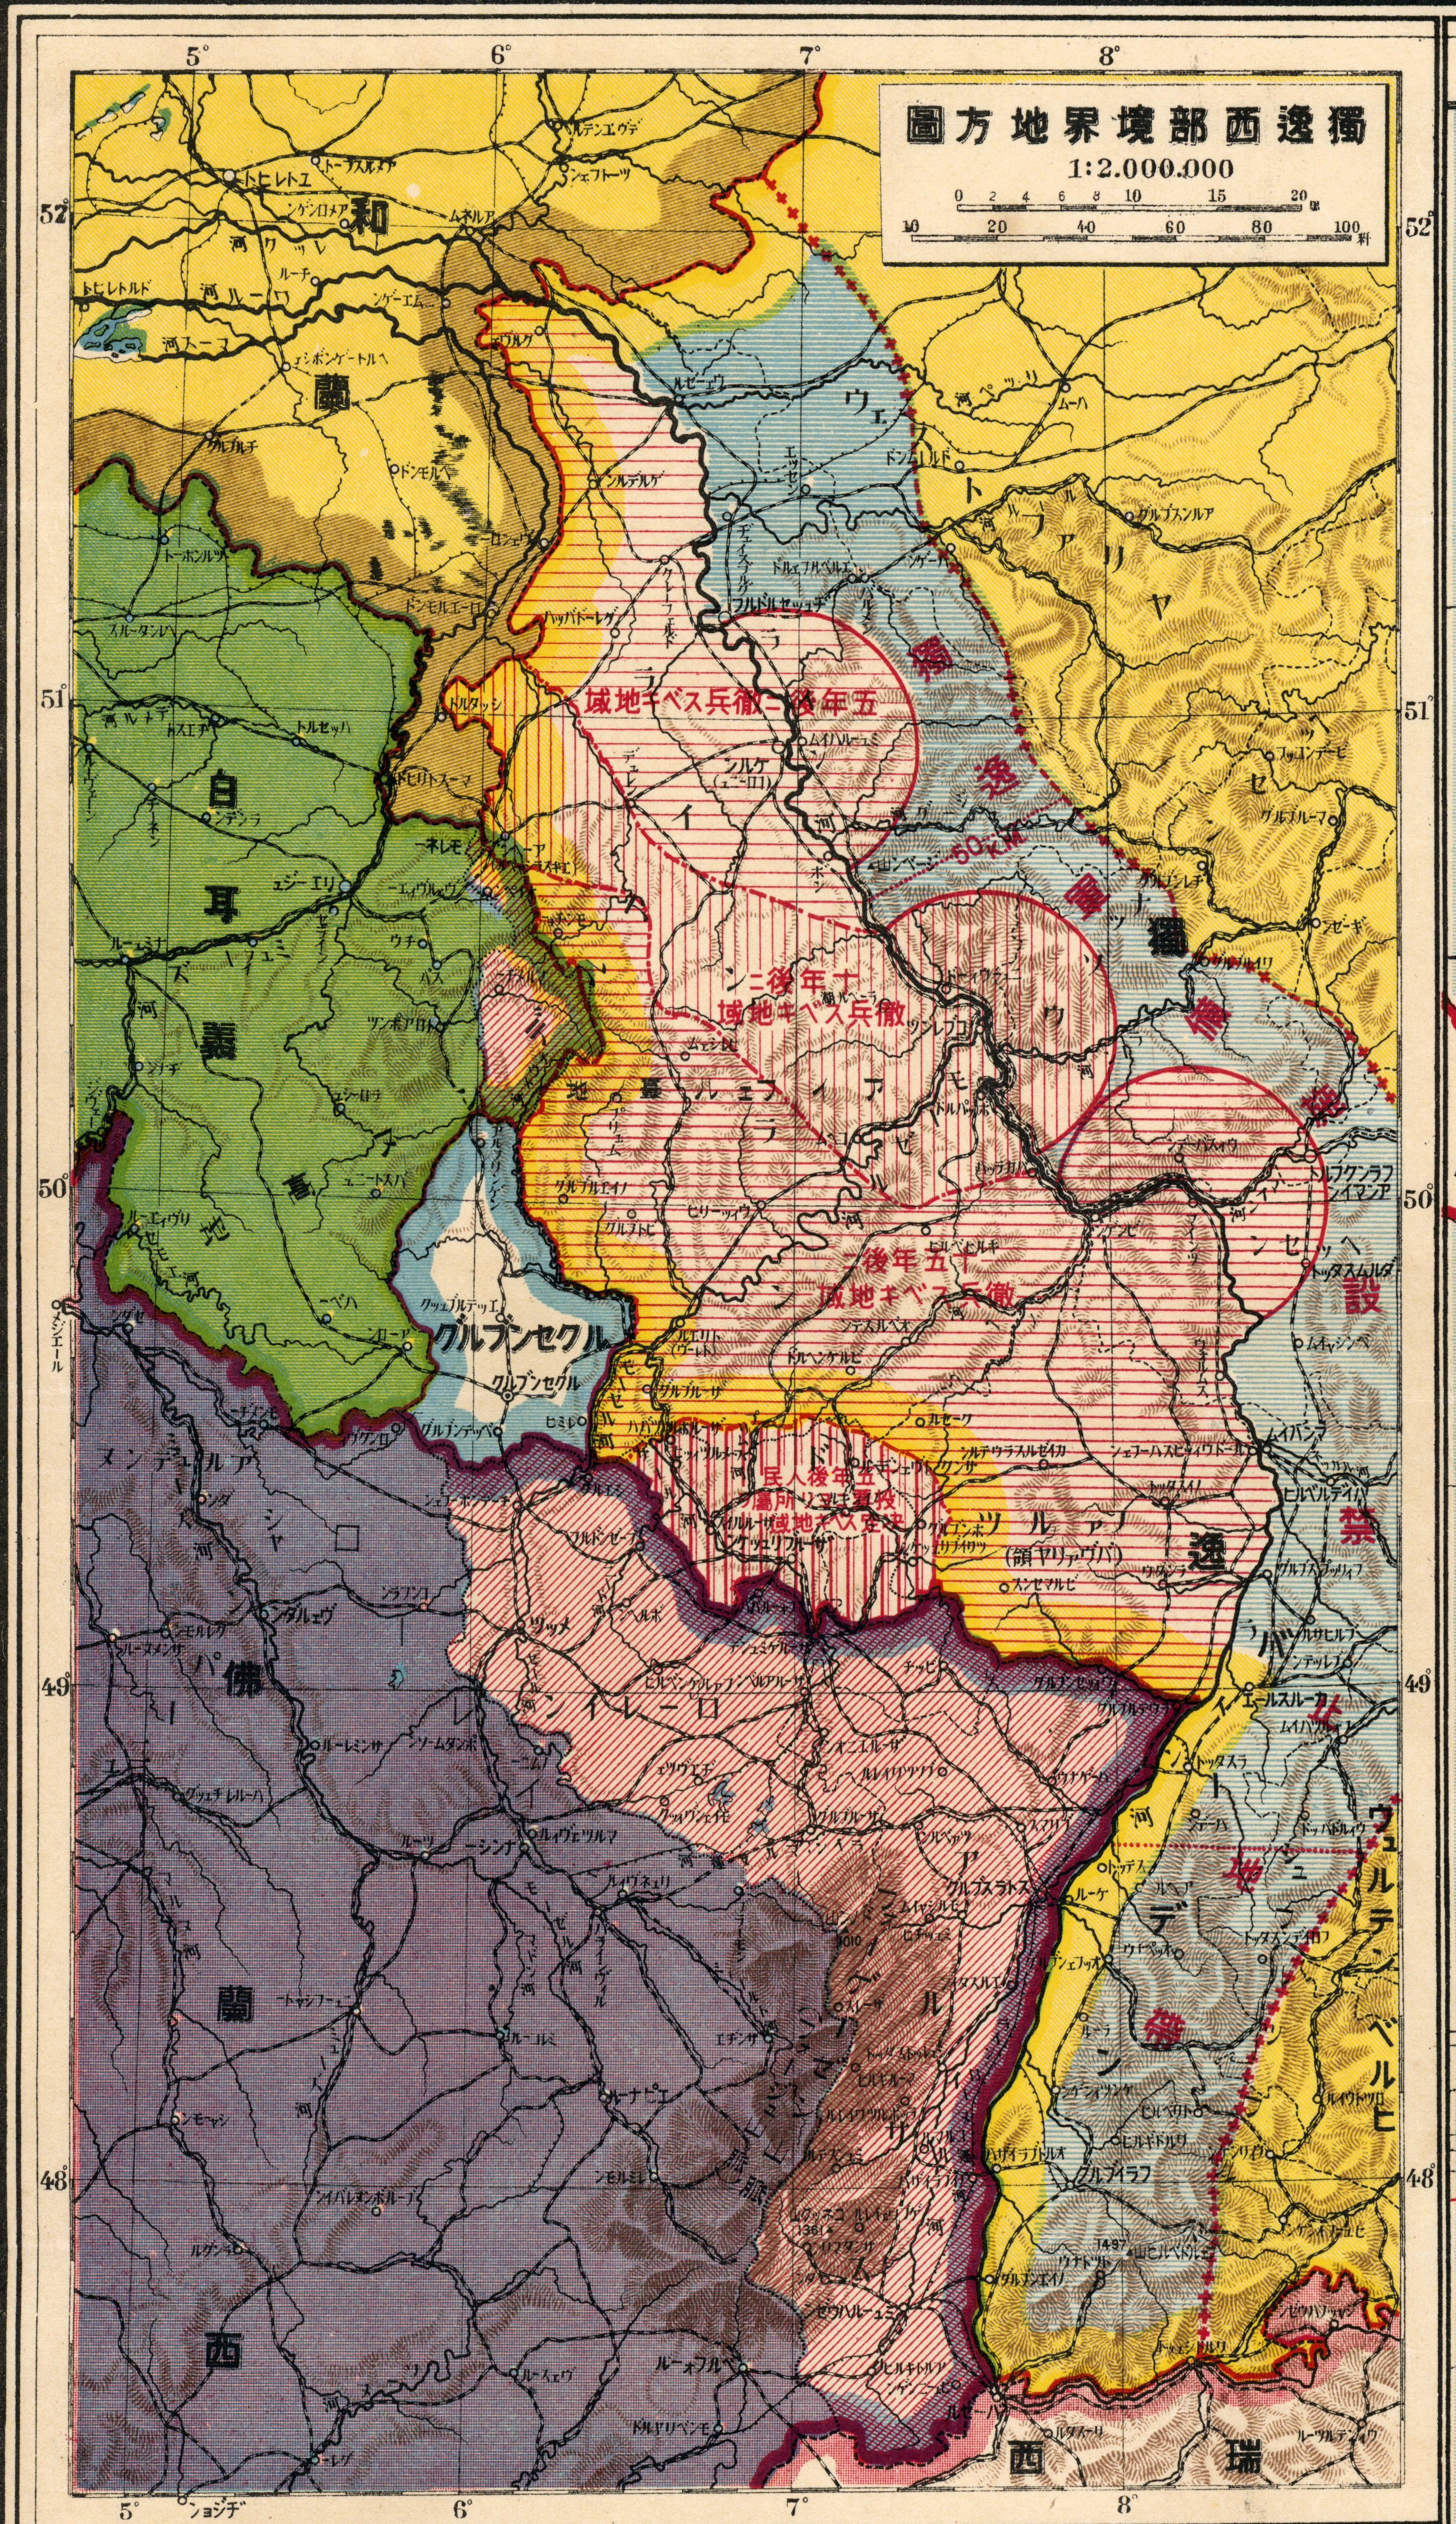 Map Of Germany 1919.1919 Japanese Map Of South Western Germany With Its Bordering